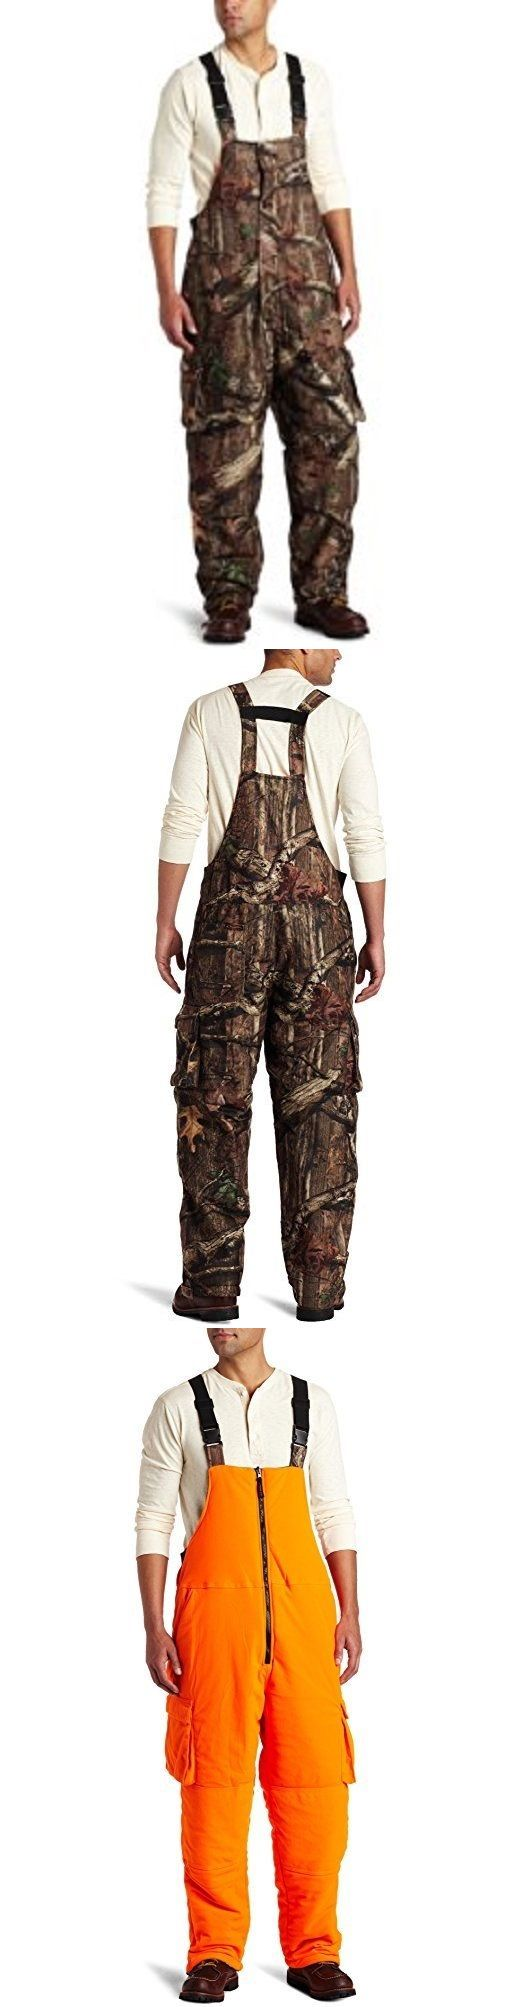 Other Hunting Clothing and Accs 159036: New Yukon Gear Men S Reversible Insulated Bib Overalls Extra Large Mossy Oak Bui -> BUY IT NOW ONLY: $89.89 on eBay!